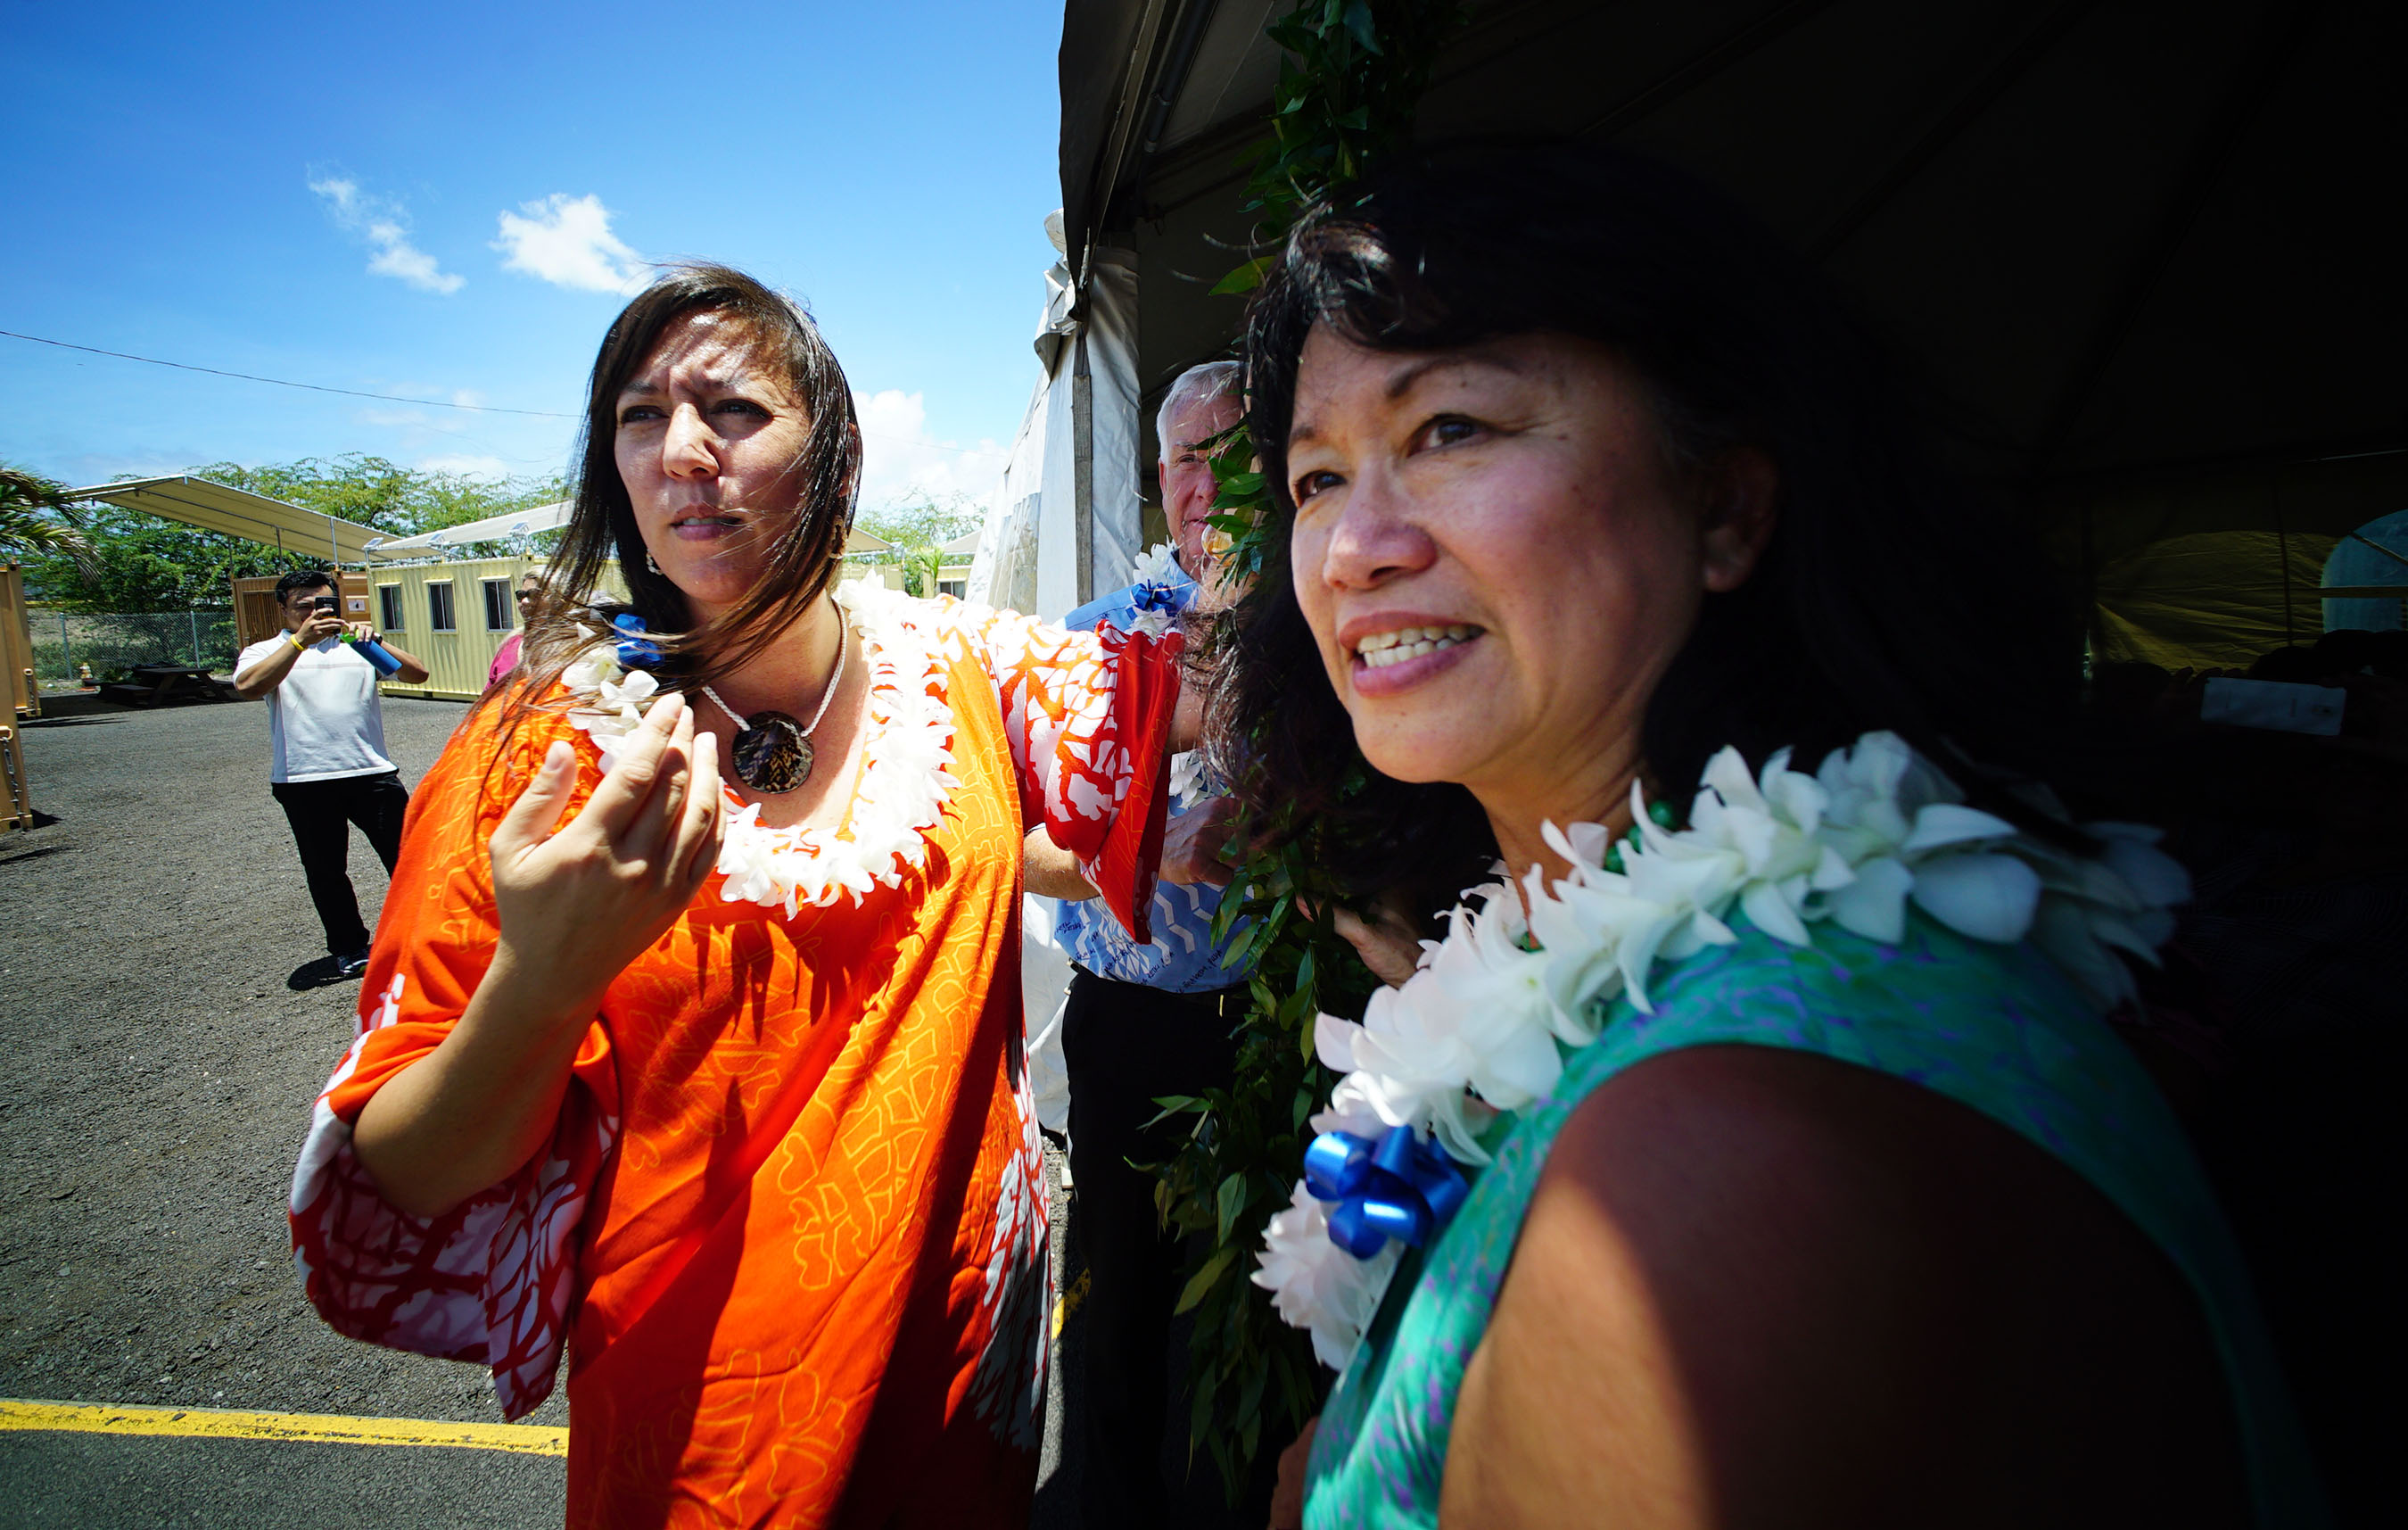 <p>Even though the shelter had been open for 220 days, the event was considered a grand opening. IHS Executive Director Connie Mitchell, right, and IHS Chaplain Terry Yasuko Ogawa prepared to untie the maile lei.</p>